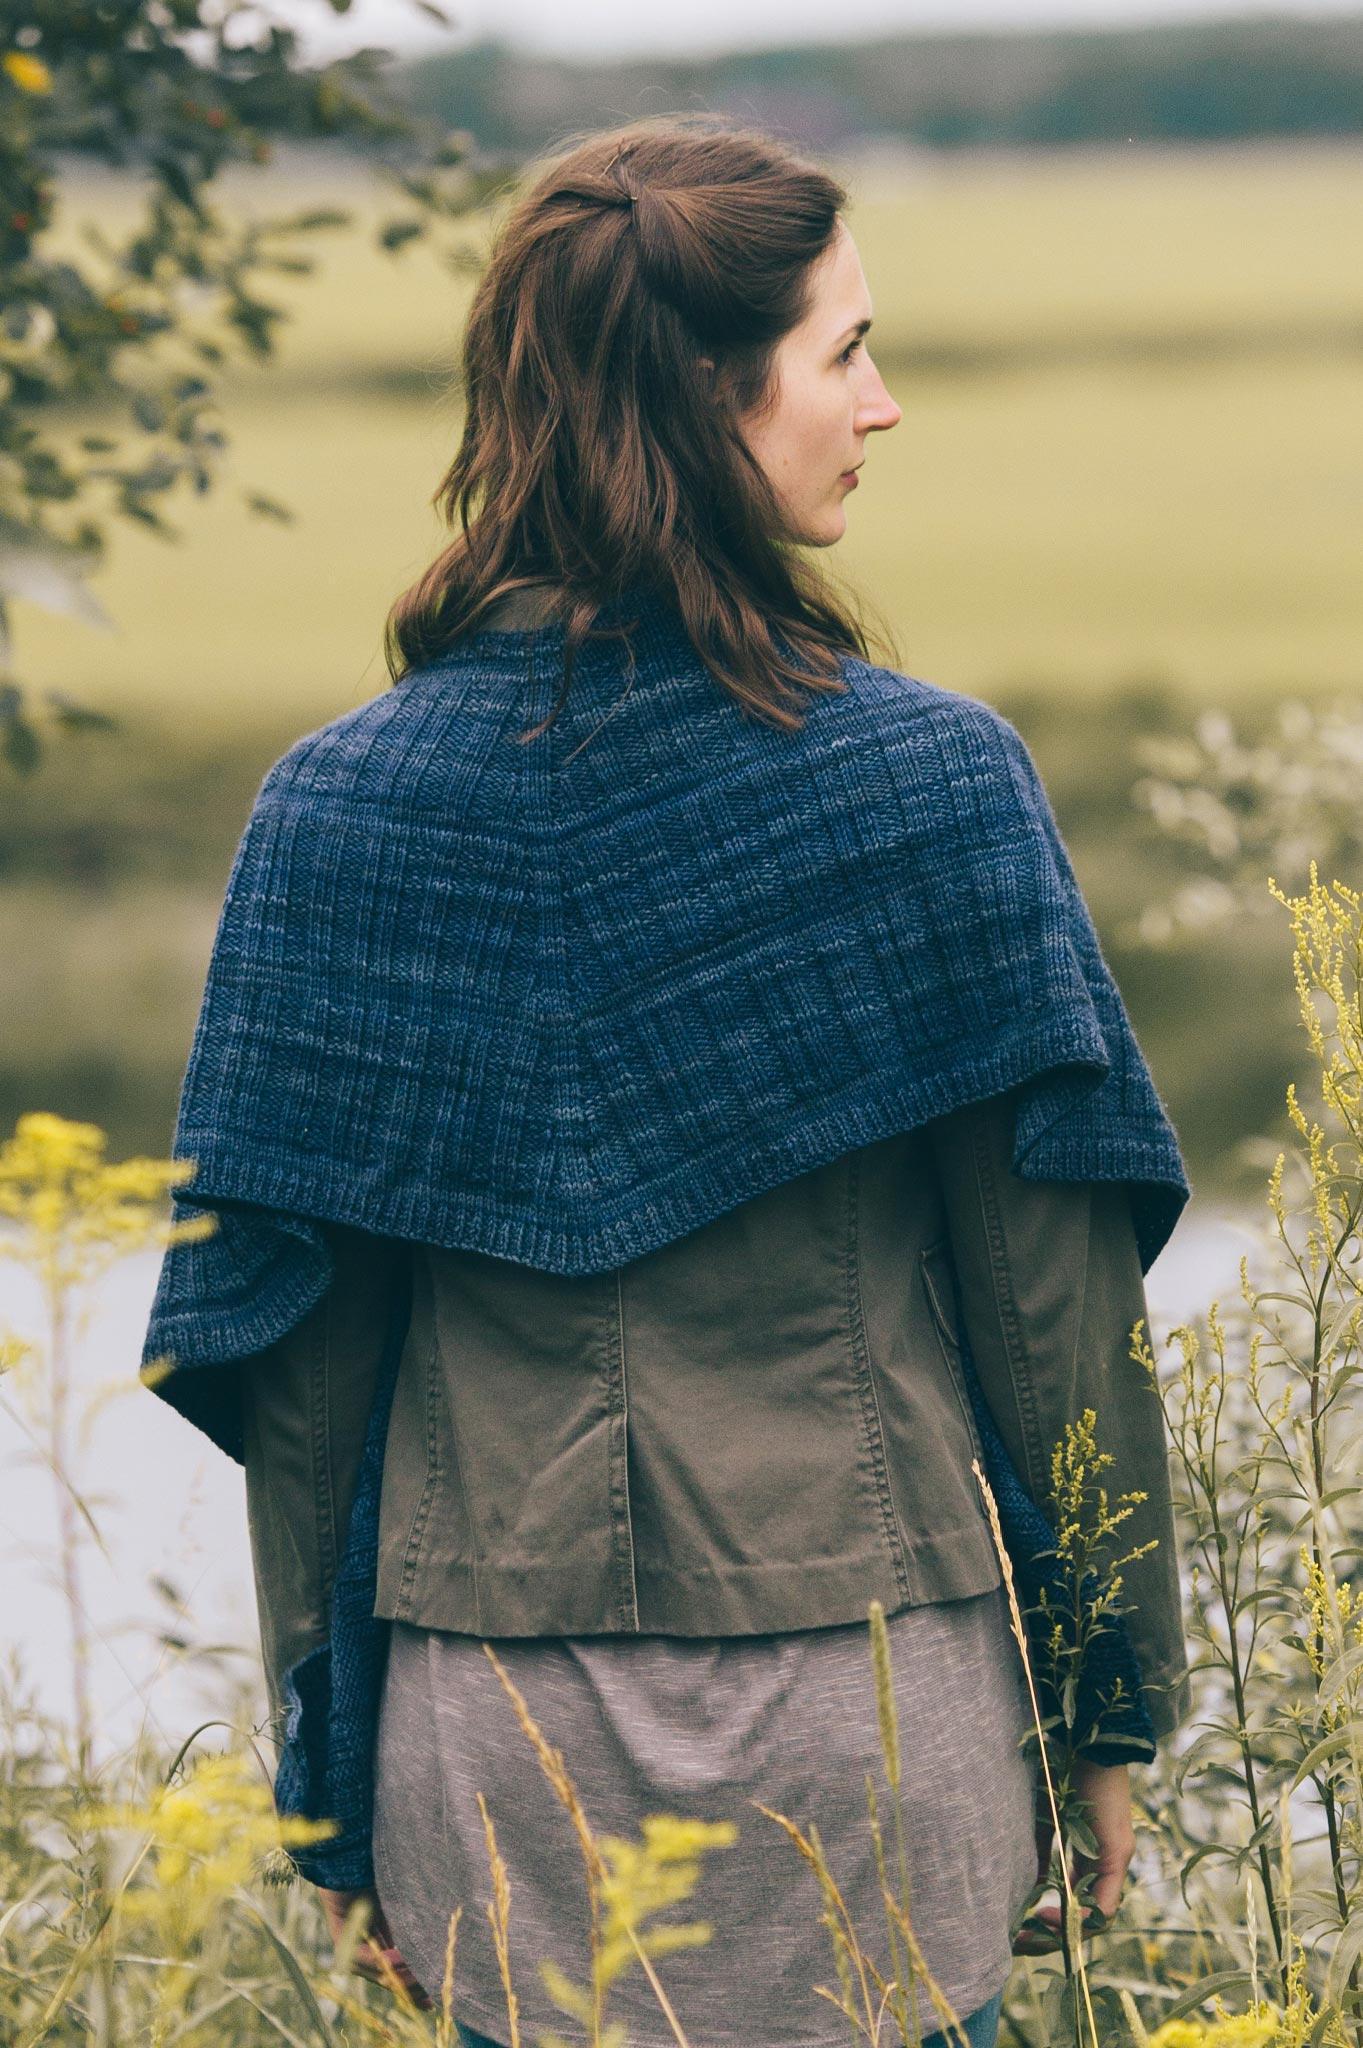 quince-co-becket-leah-b-thibault-knitting-pattern-phoebe-2.jpg